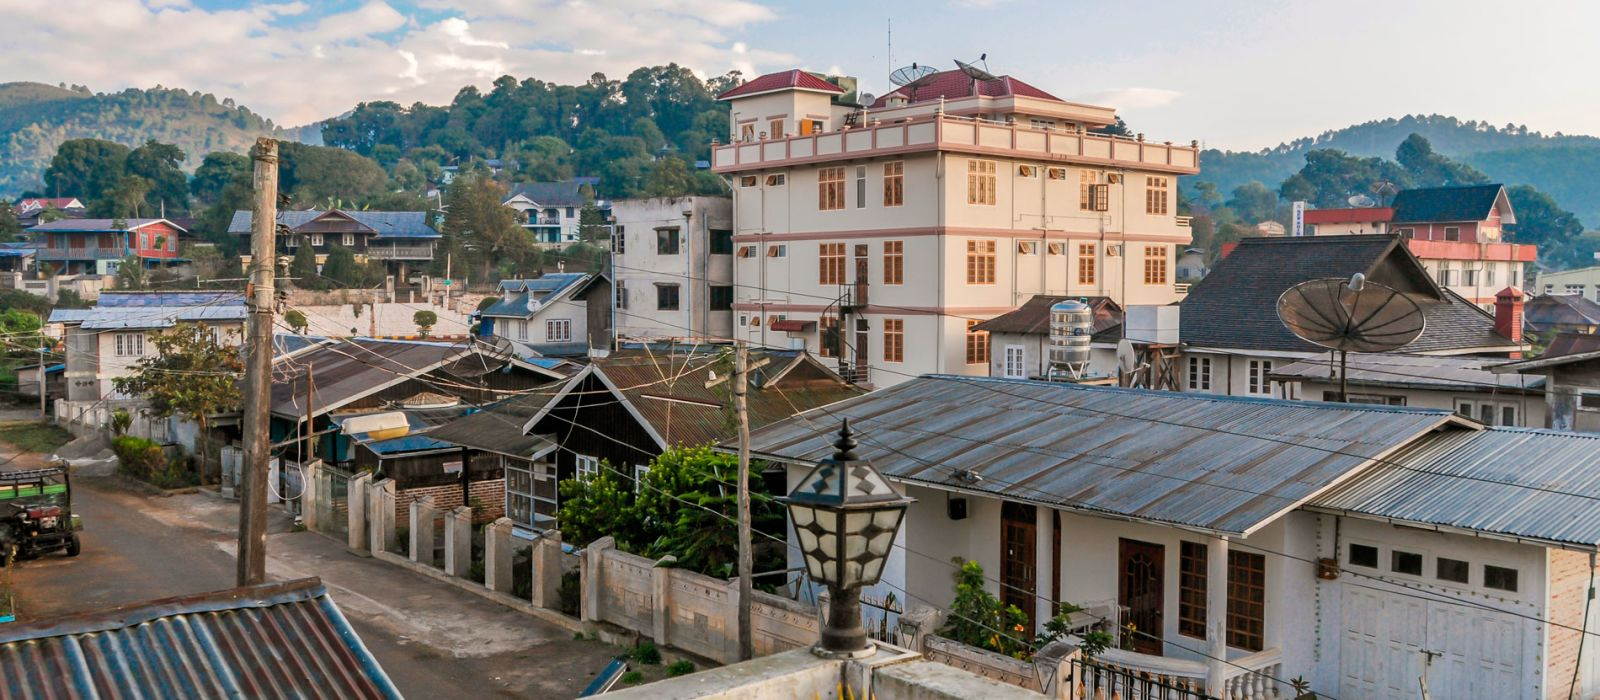 Hotel Kalaw-Inle Trek Overnight Stay At Monastery/Local Home Myanmar